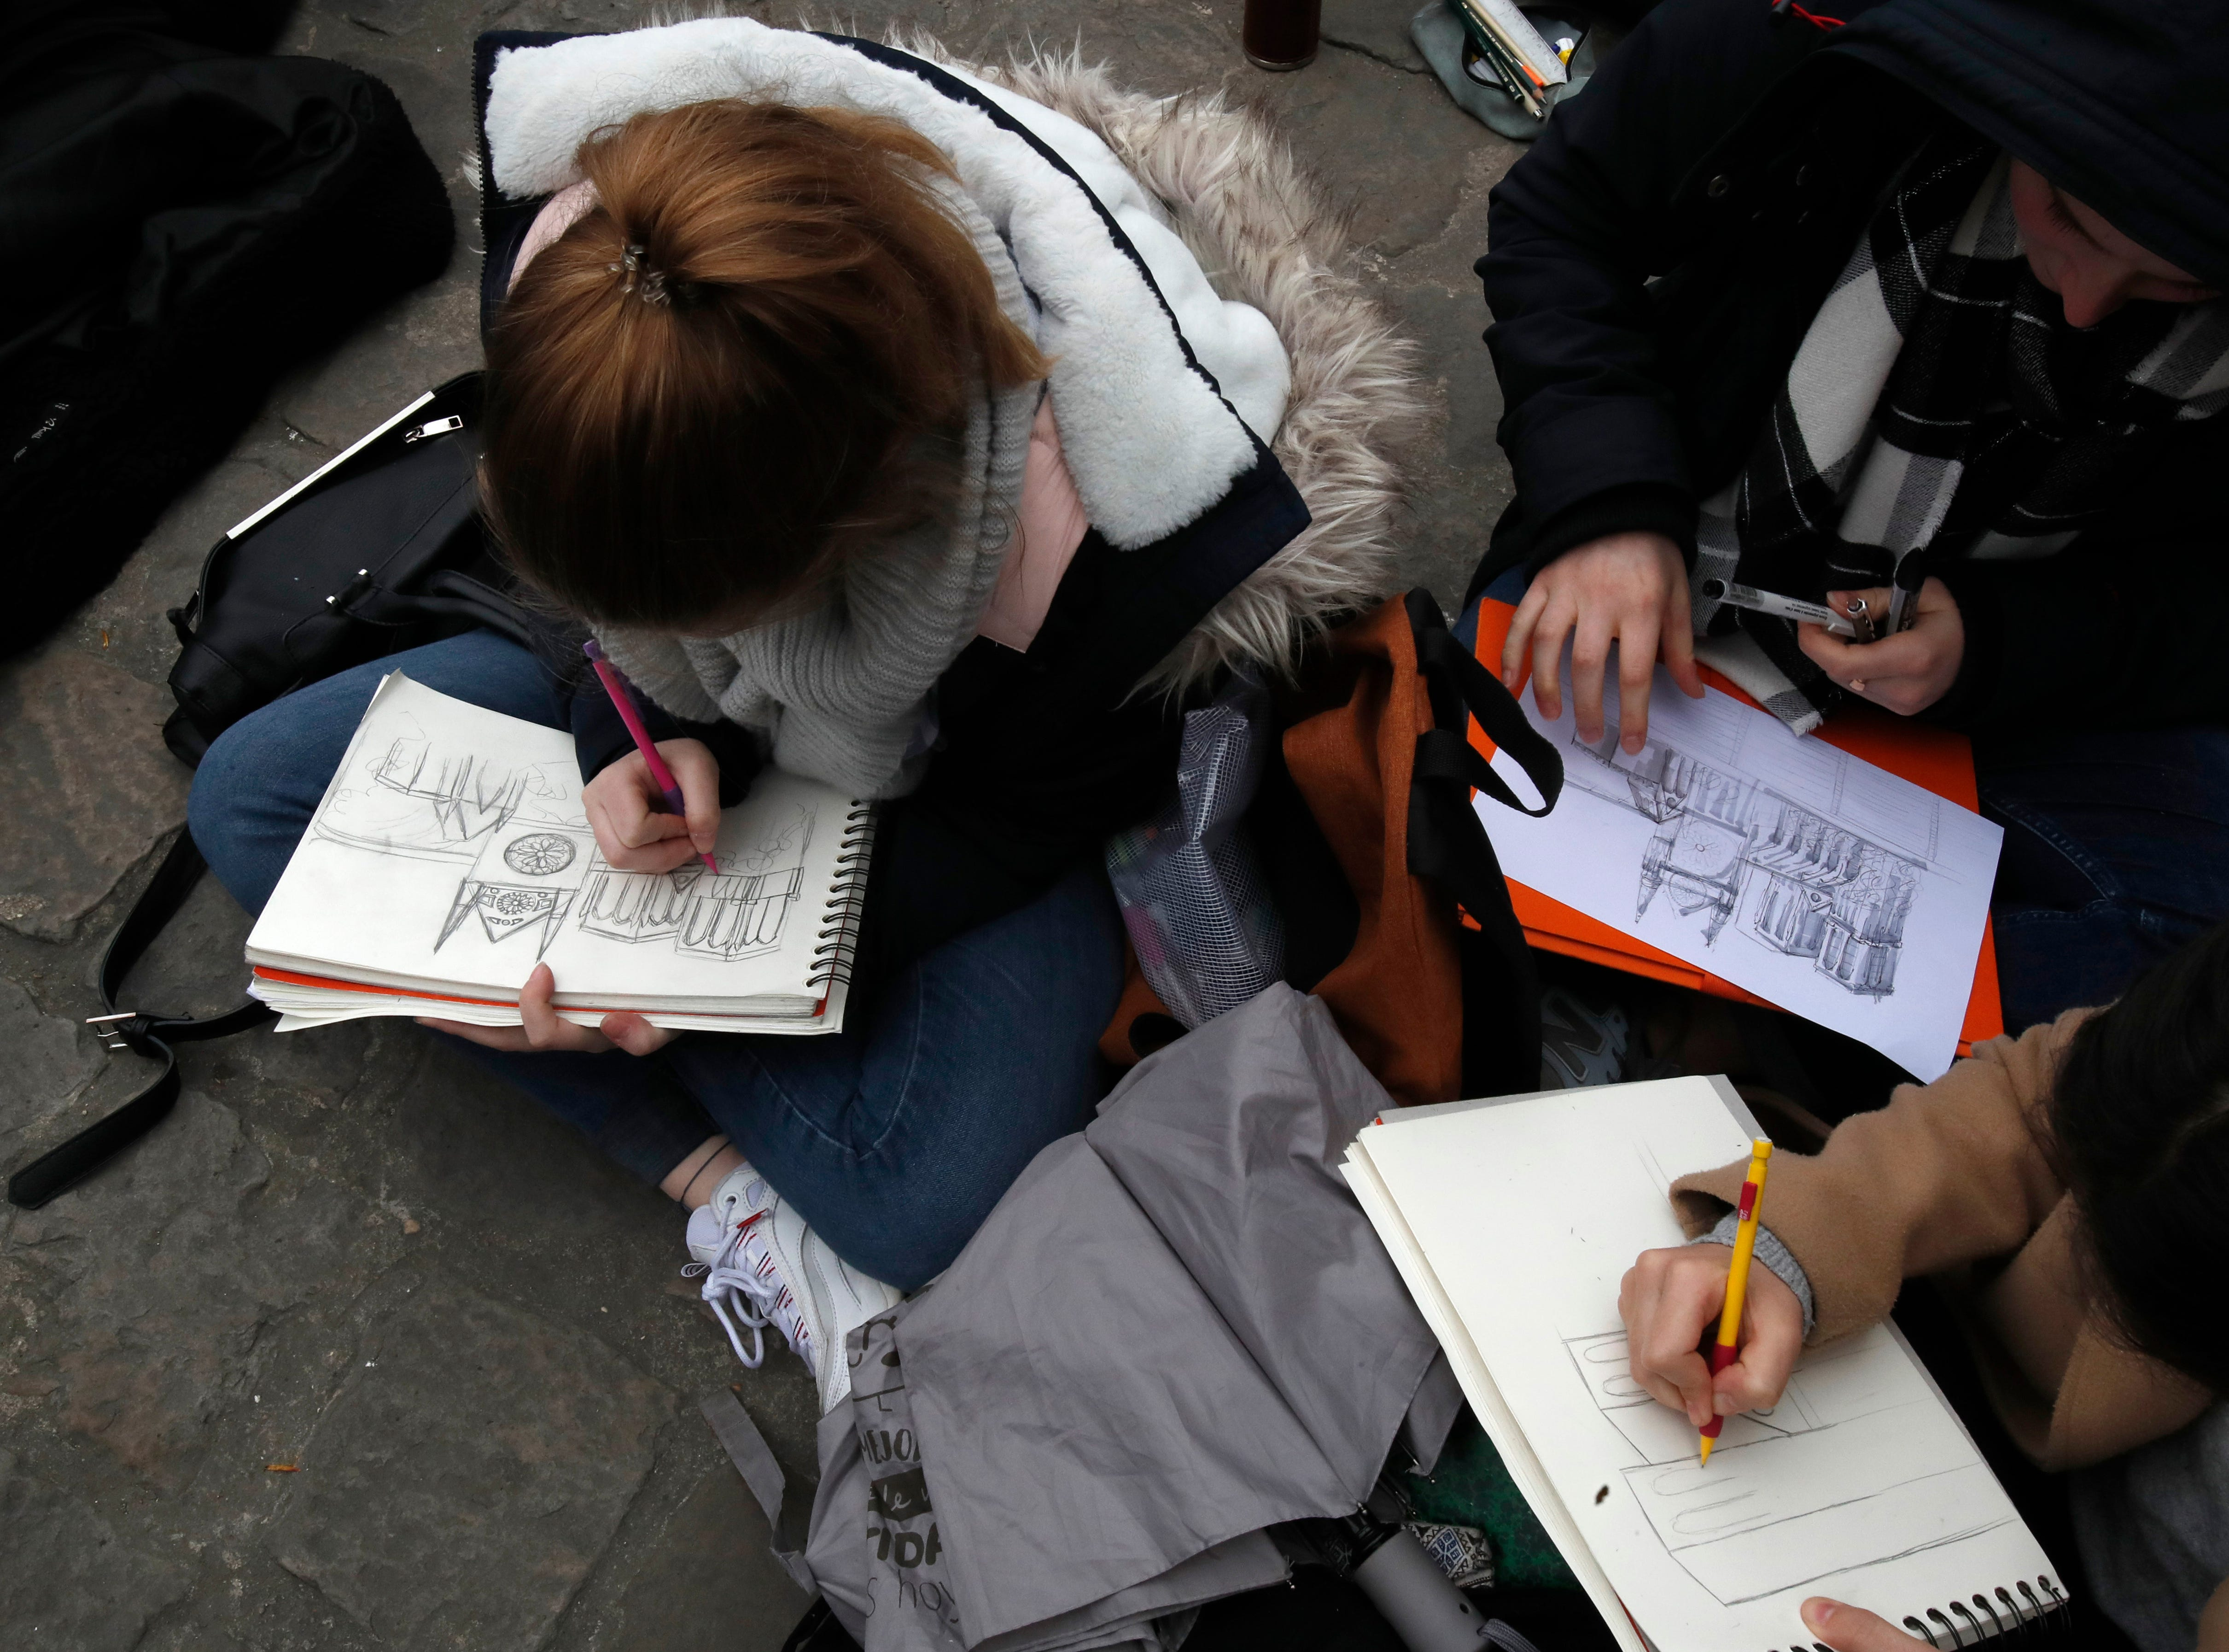 People make drawings of the Notre Dame cathedral after the fire in Paris, Tuesday, April 16, 2019. Experts are assessing the blackened shell of Paris' iconic Notre Dame cathedral to establish next steps to save what remains after a devastating fire destroyed much of the almost 900-year-old building. With the fire that broke out Monday evening and quickly consumed the cathedral now under control, attention is turning to ensuring the structural integrity of the remaining building. (AP Photo/Christophe Ena)